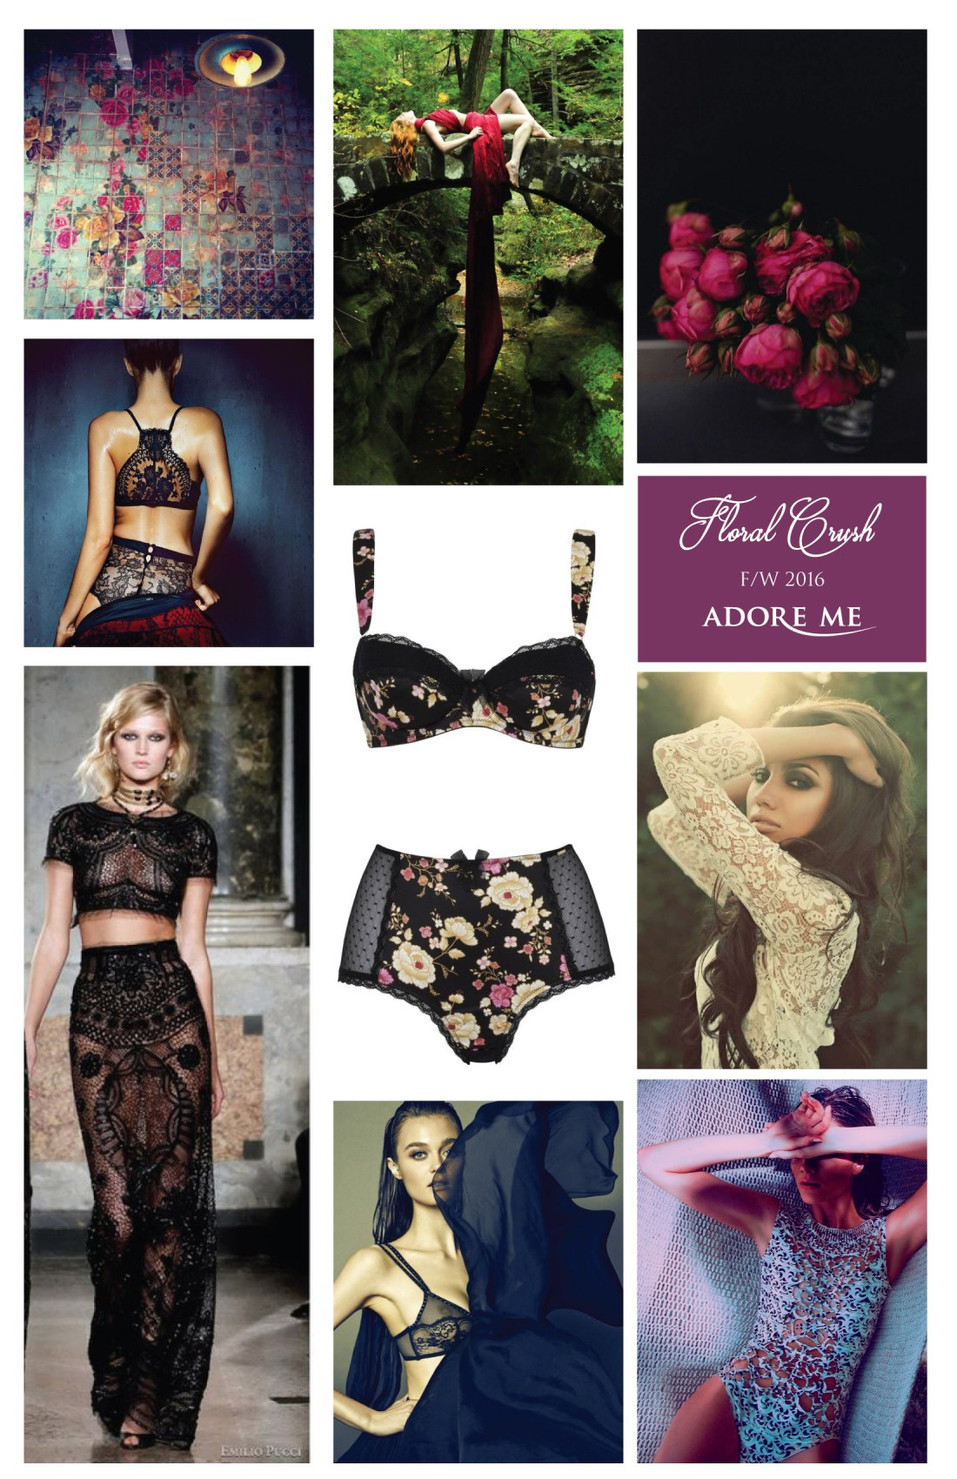 Adore-Me-Lingerie-Fall-2016-Floral-Crush